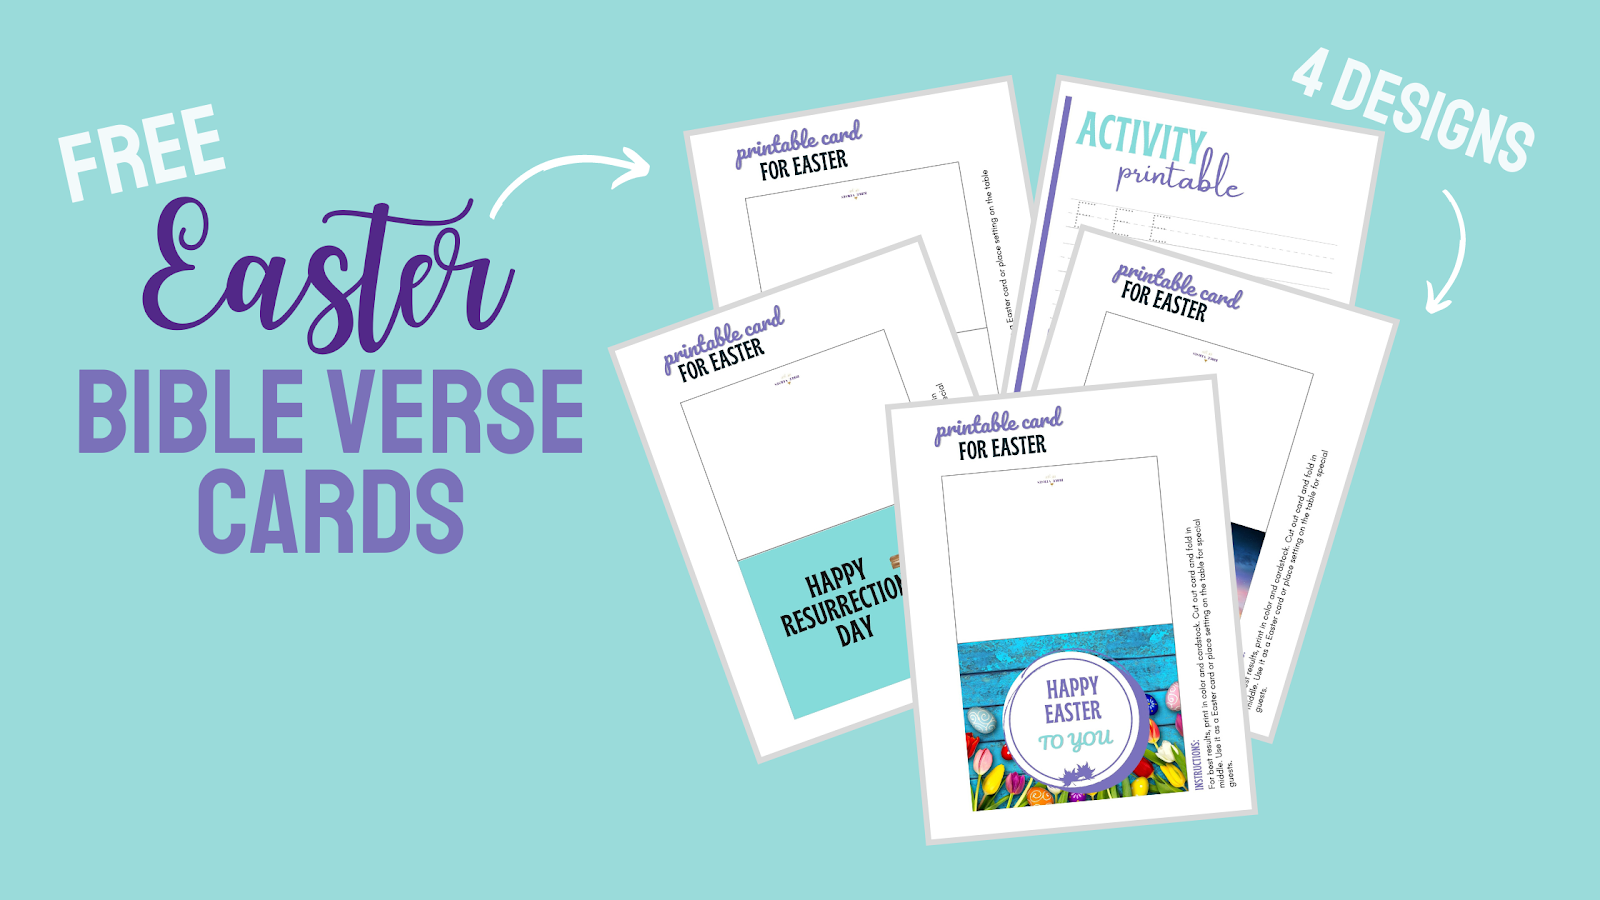 Need Easter Verses for Cards? Here are 10 easy to understand Easter Bible Verses perfect for DIY Cards and Pre-Made Cards.